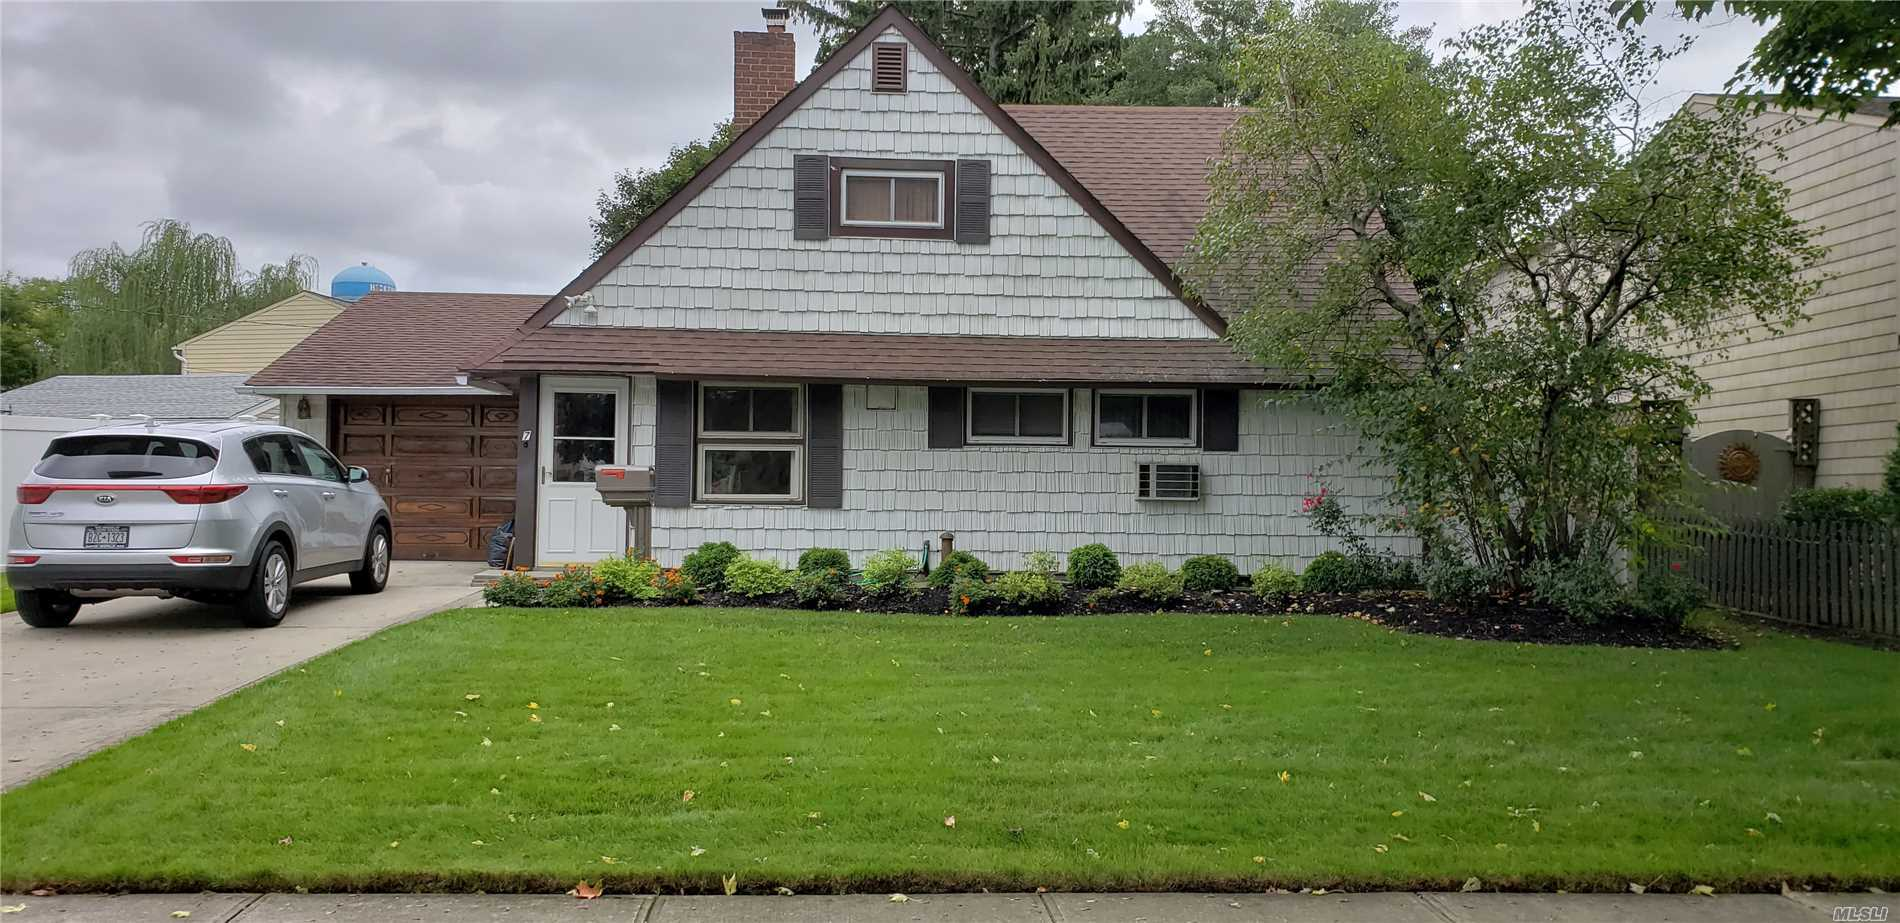 Photo of home for sale at 7 Hemp Ln, Hicksville NY